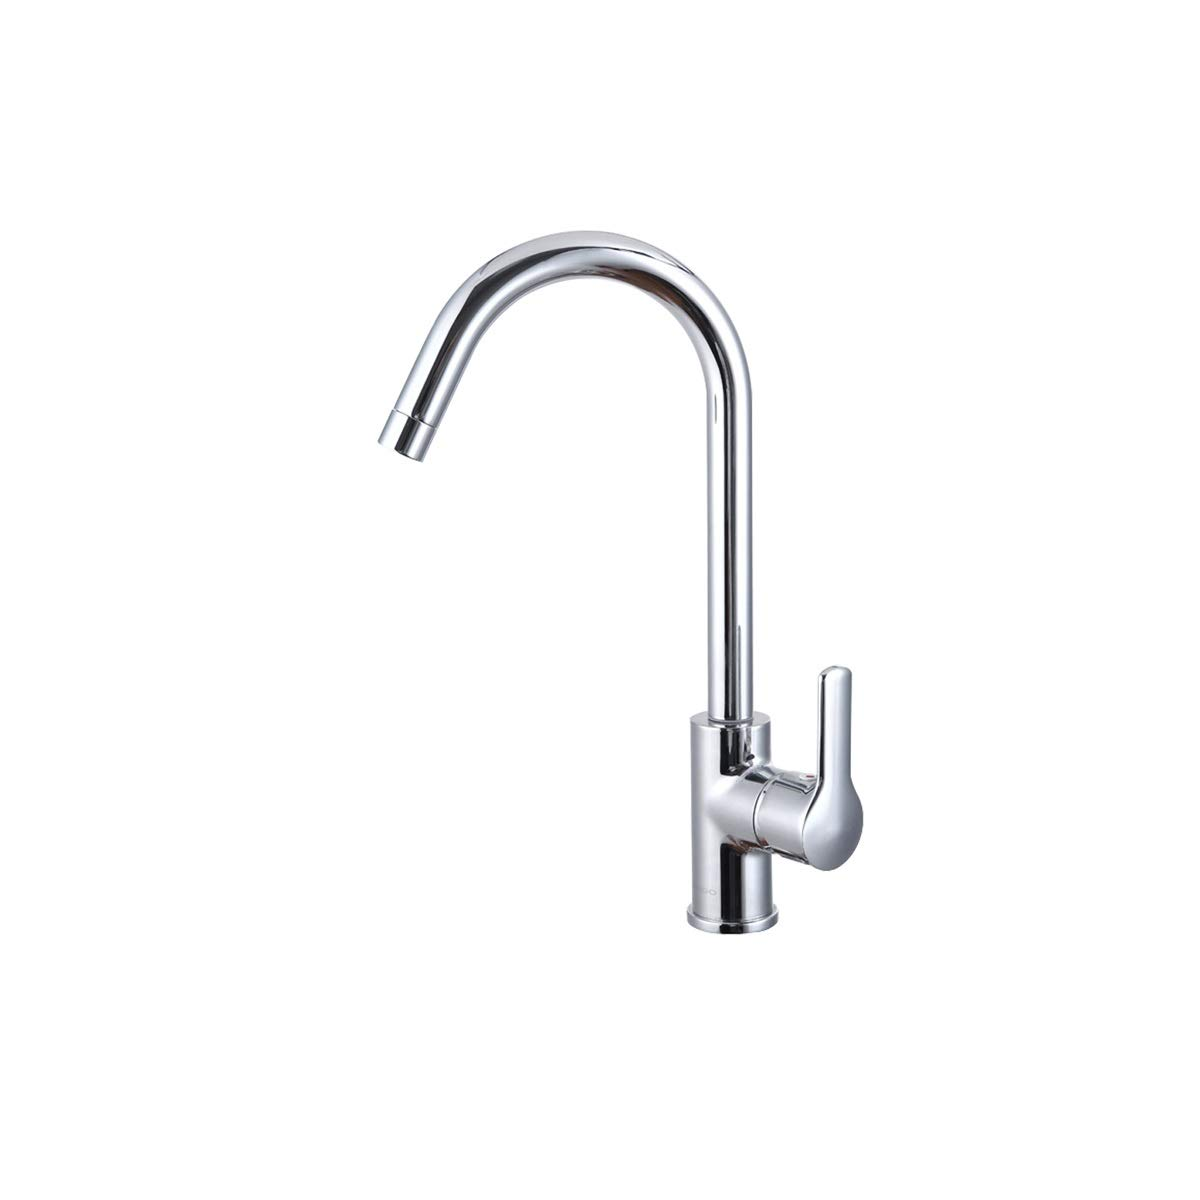 QIANZICAIDIANJIA Single Handle High Polished Finish Pulls Out Kitchen Faucet, Single Layer Stainless Steel Kitchen Sink Faucet With Pull-down Sprayer, stainless steel faucet by QIANZICAIDIANJIA